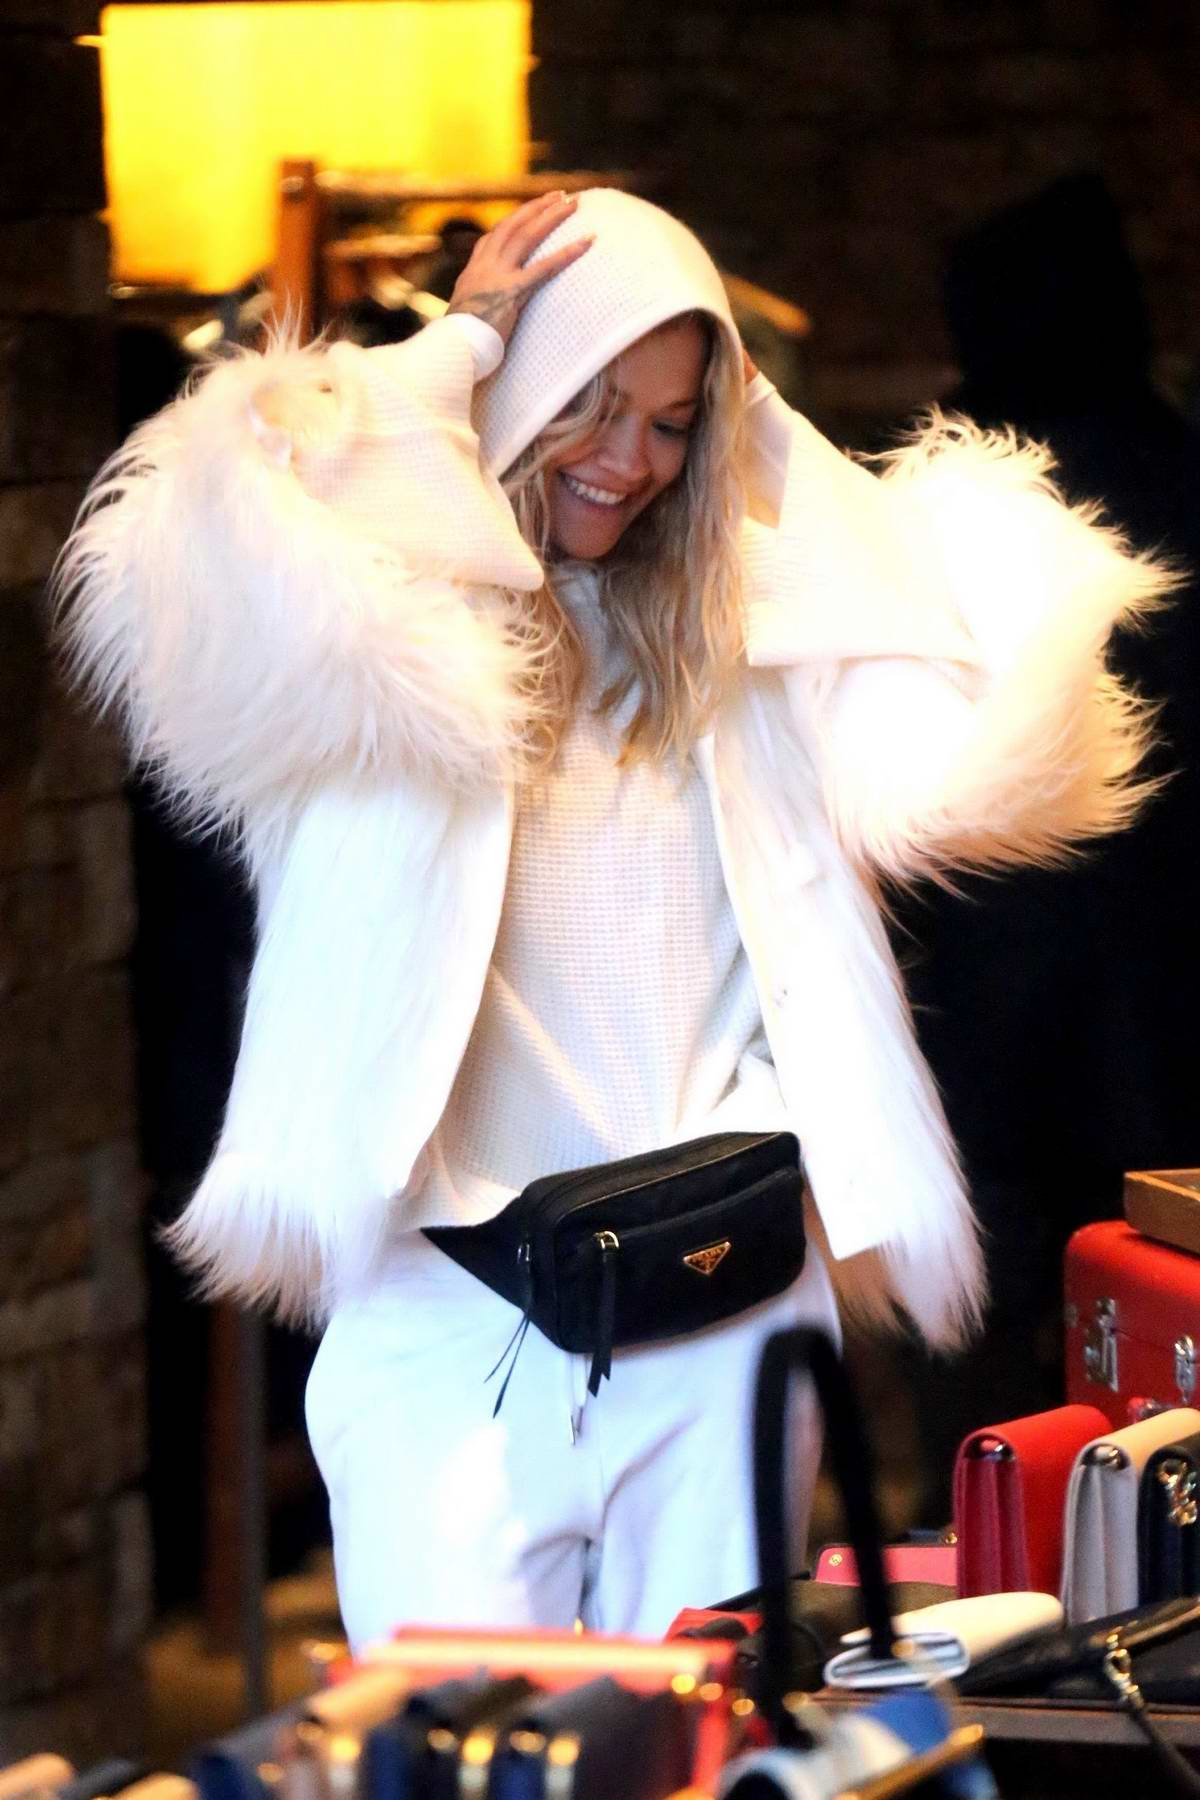 Rita Ora dressed in all white winter attire as she shops at Prada in Aspen. Colorado